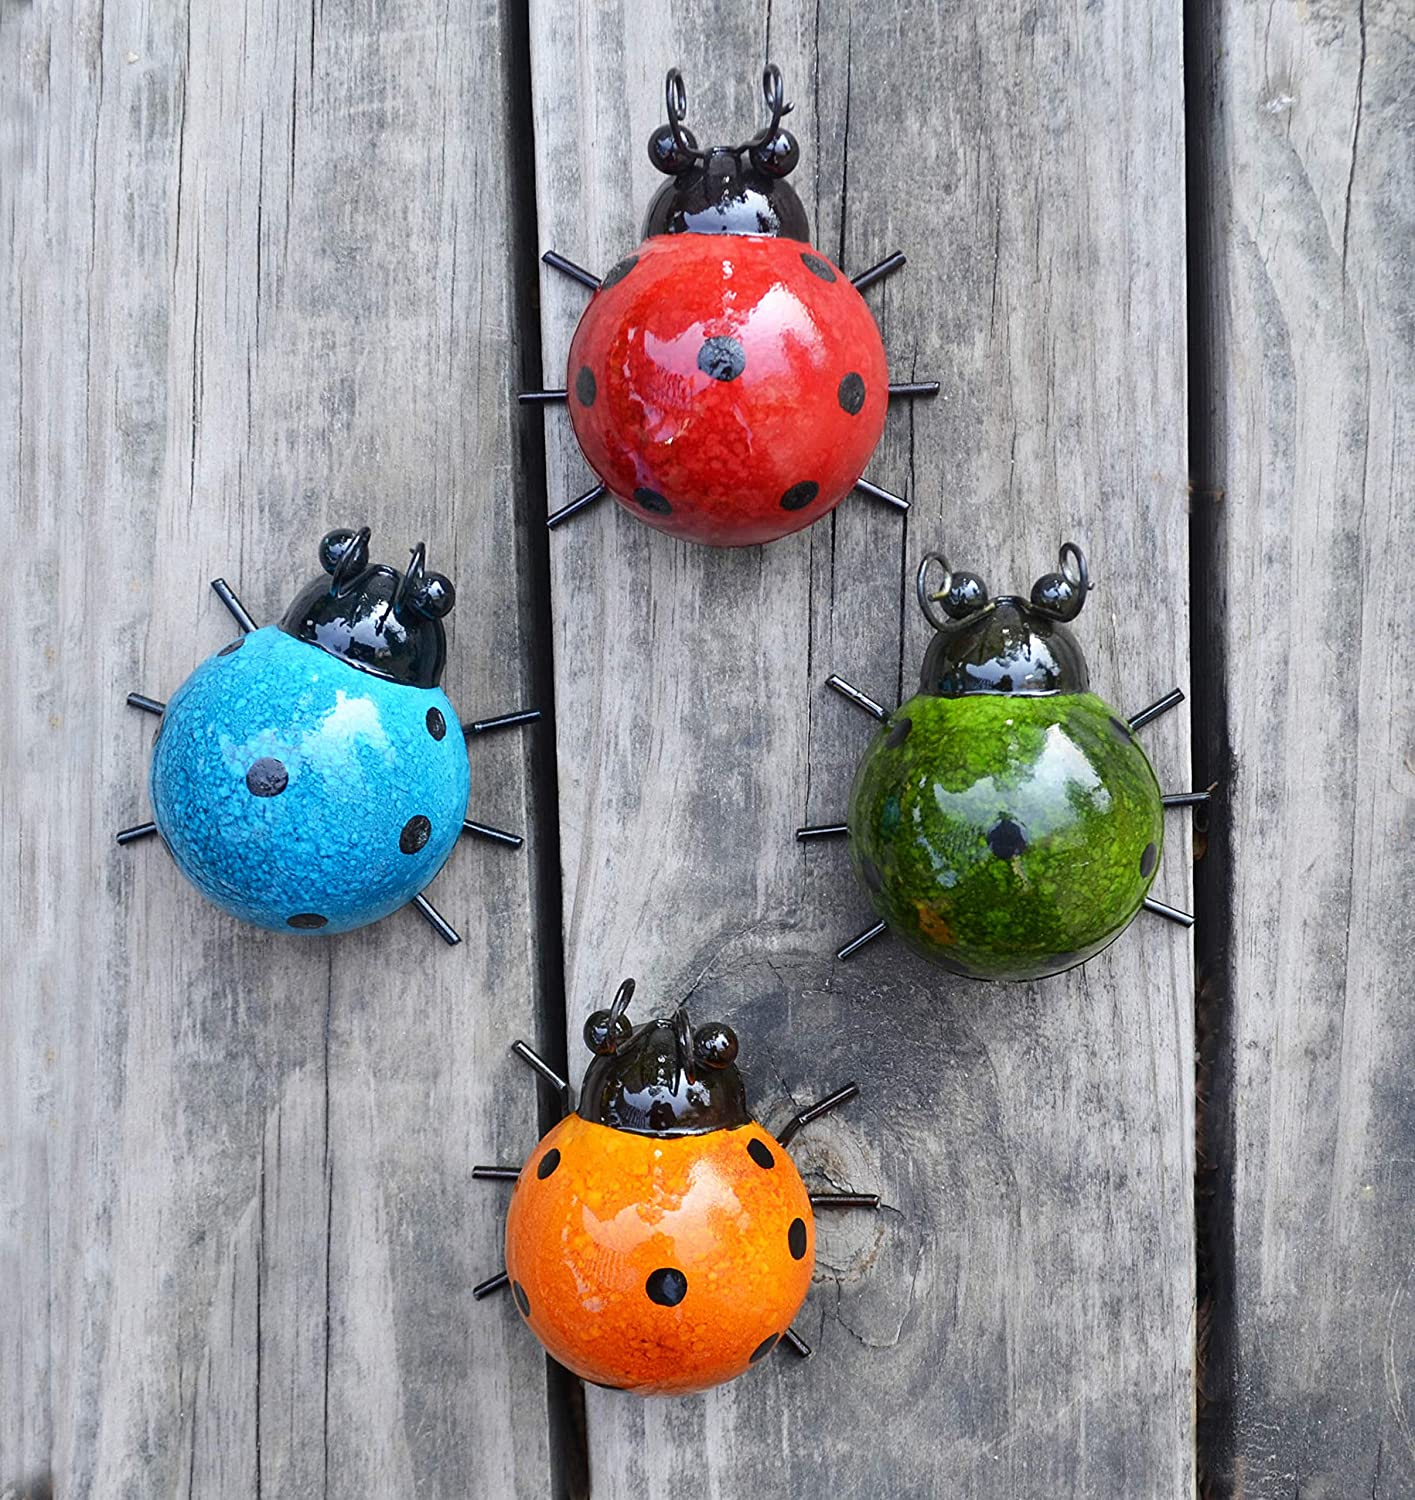 20 x Hanging Decorative Ladybirds Garden Wall Ornament Home Outdoij